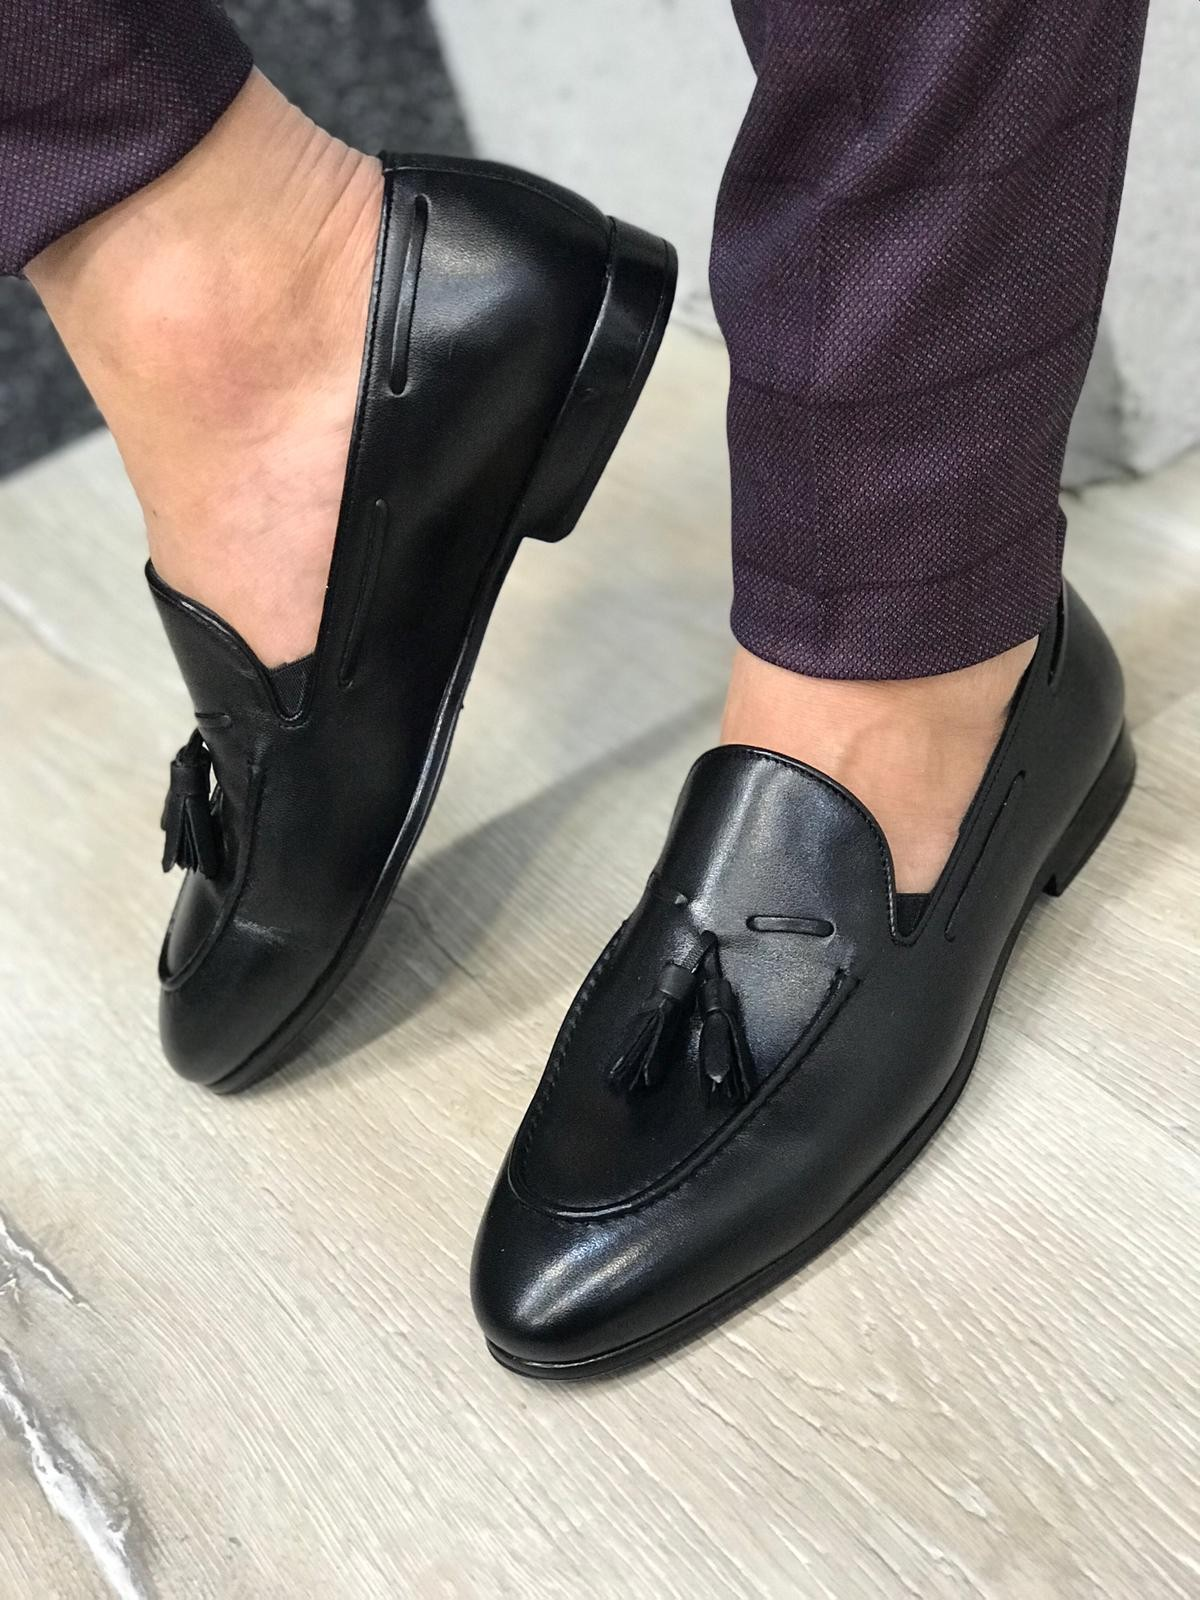 bbead0e3fb8 Black Leather Tassel Loafer by Gentwith.com with Free Shipping